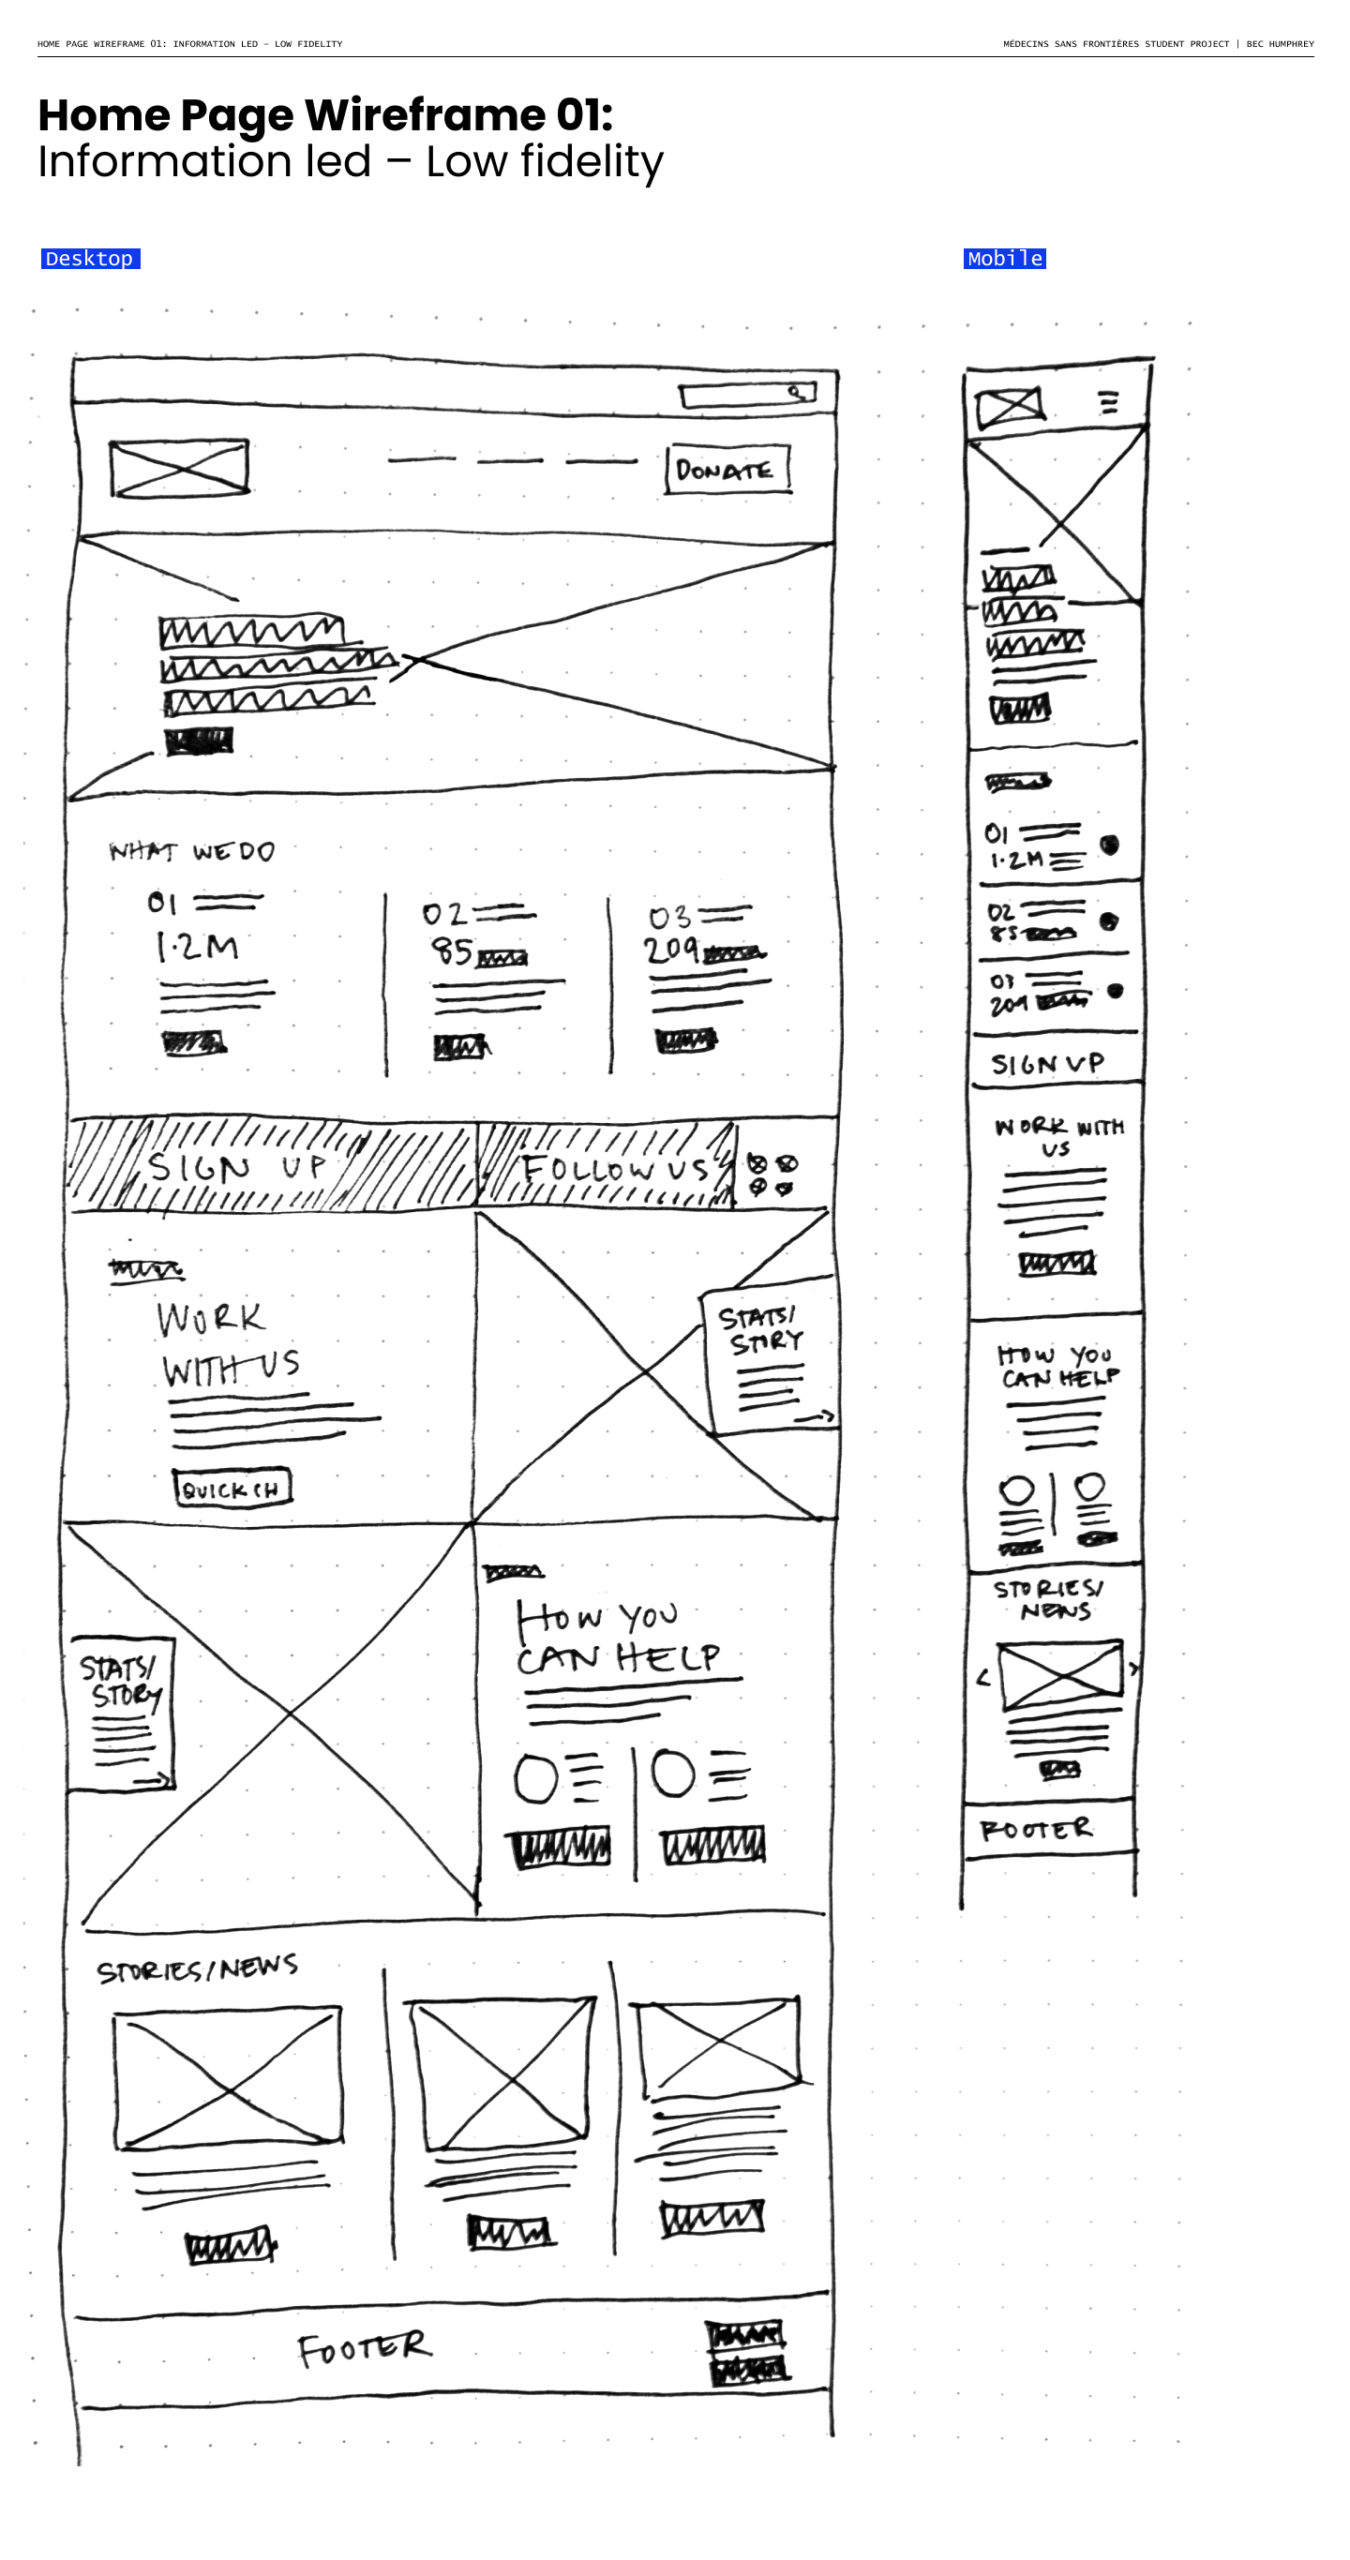 Bec_02 Home Page Wireframe 01_ Information led – Low fidelity